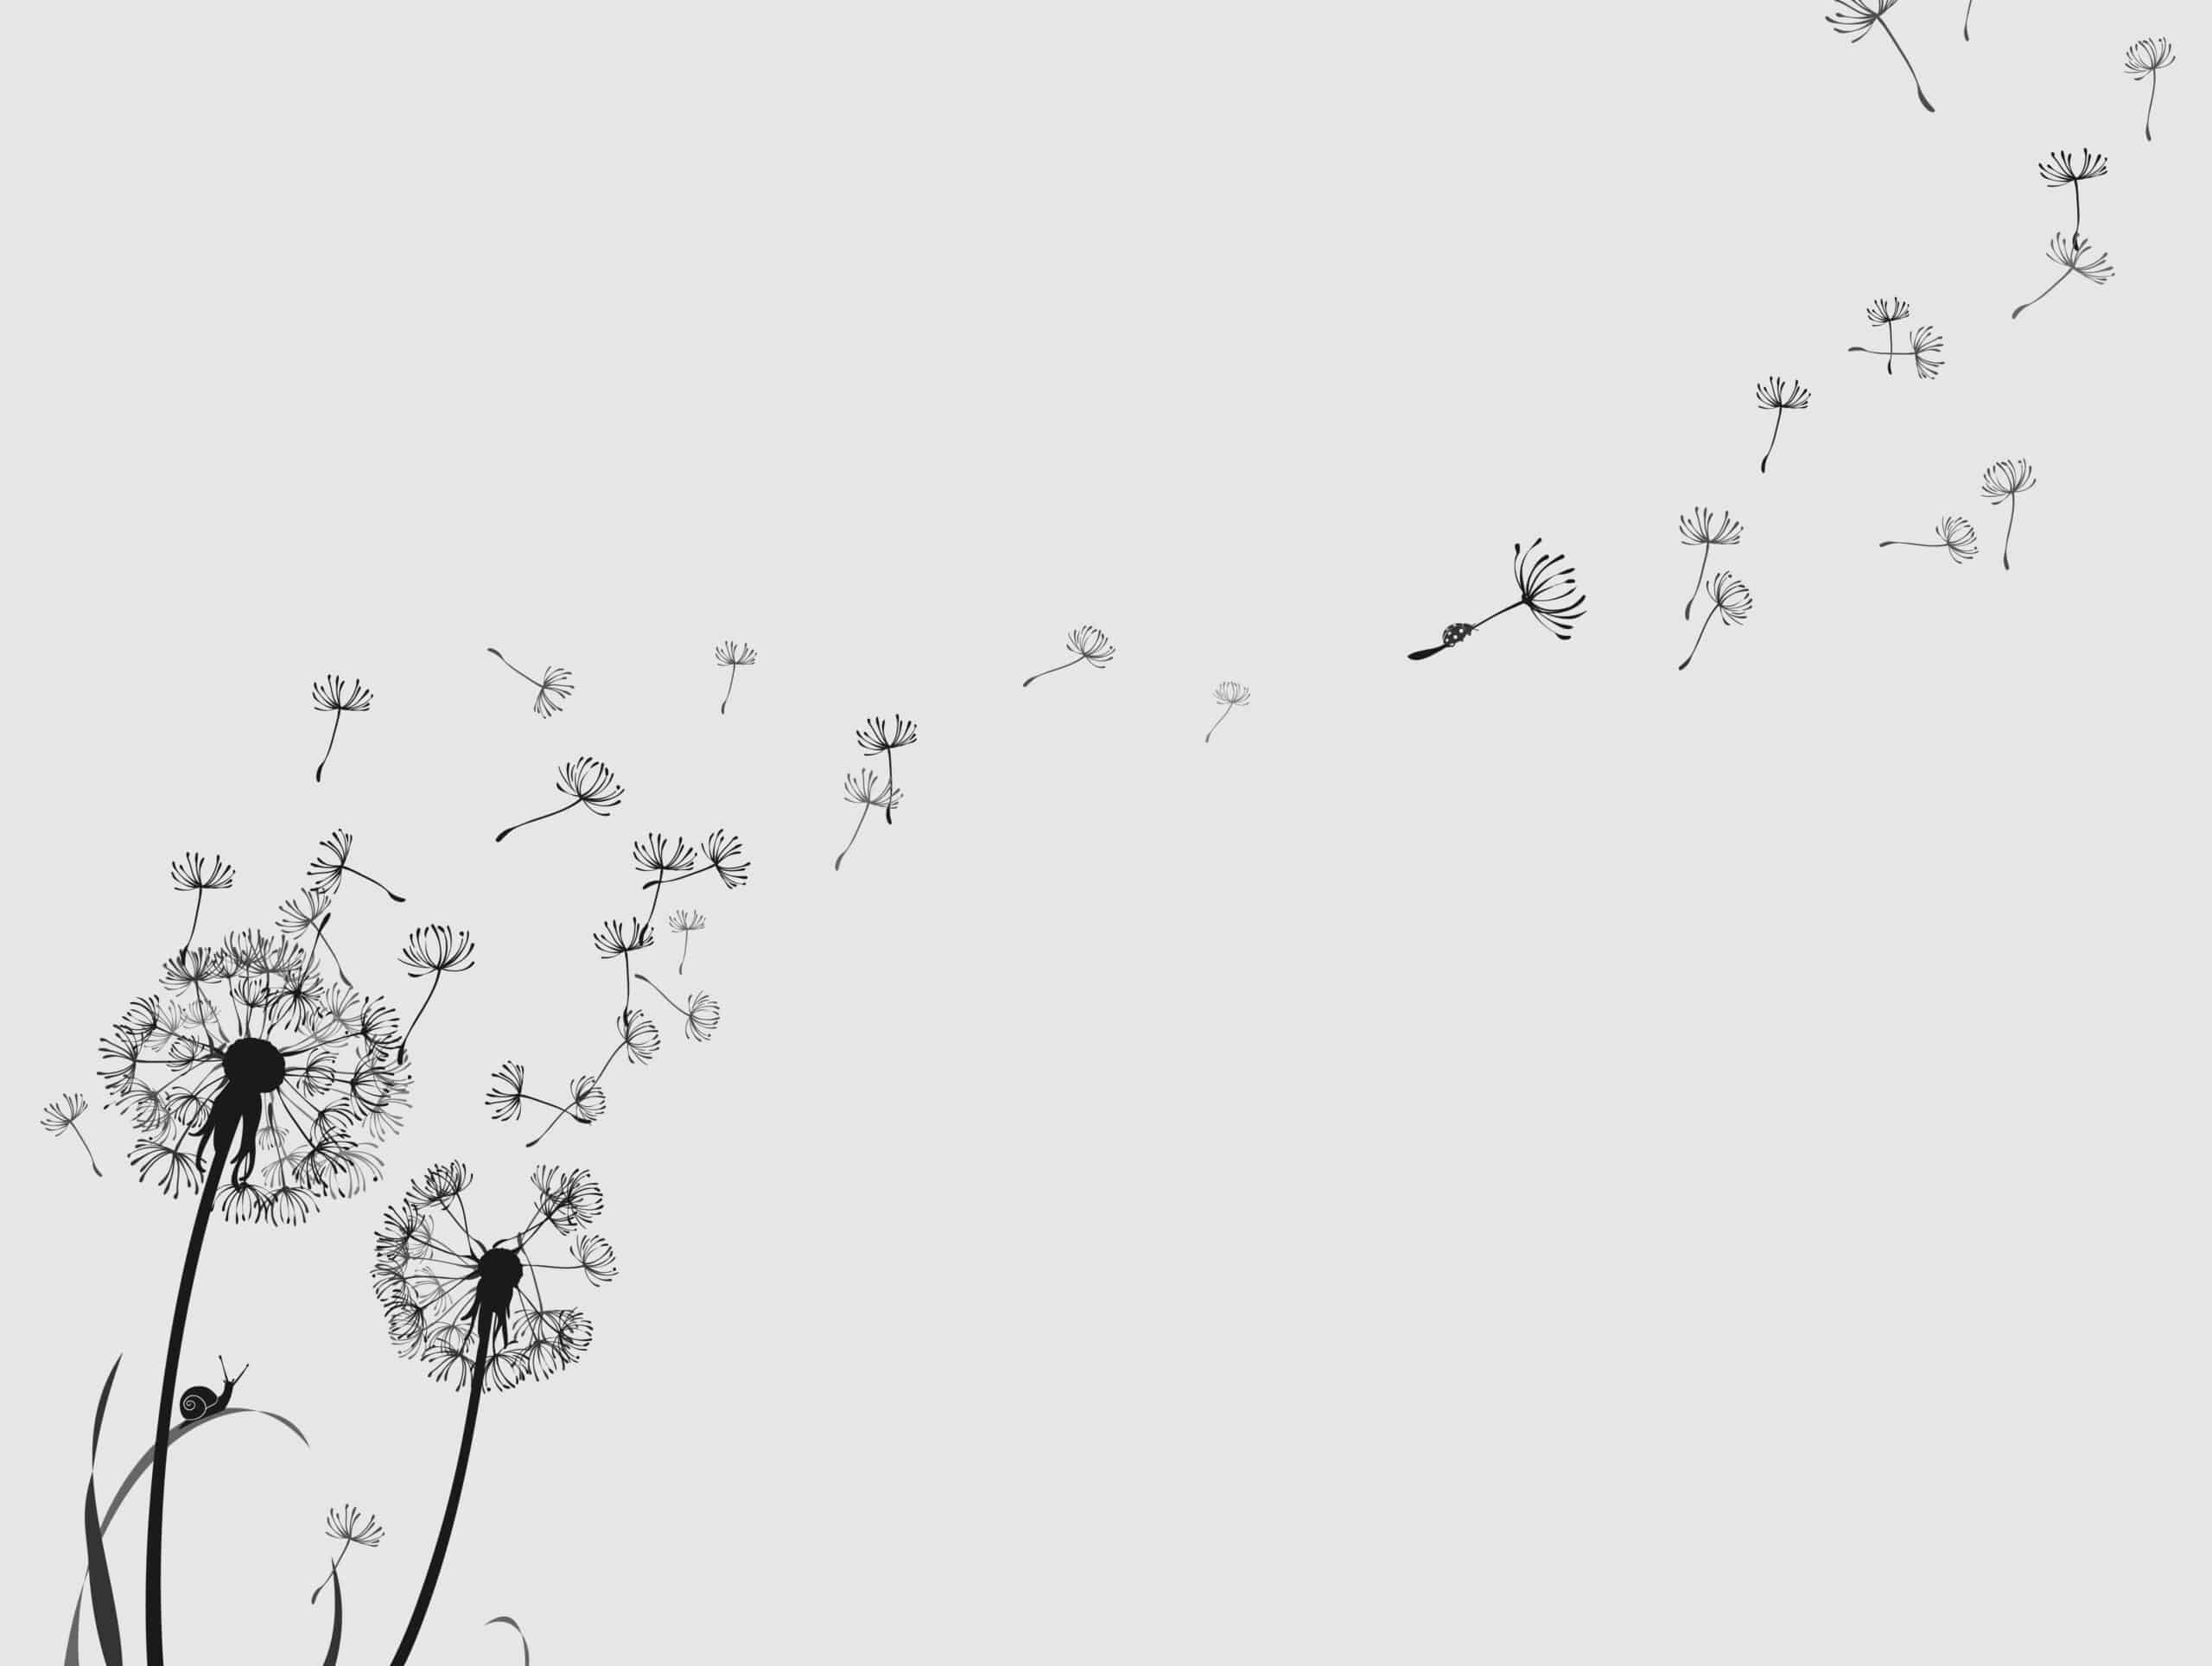 dandelion with seeds blowing drawing